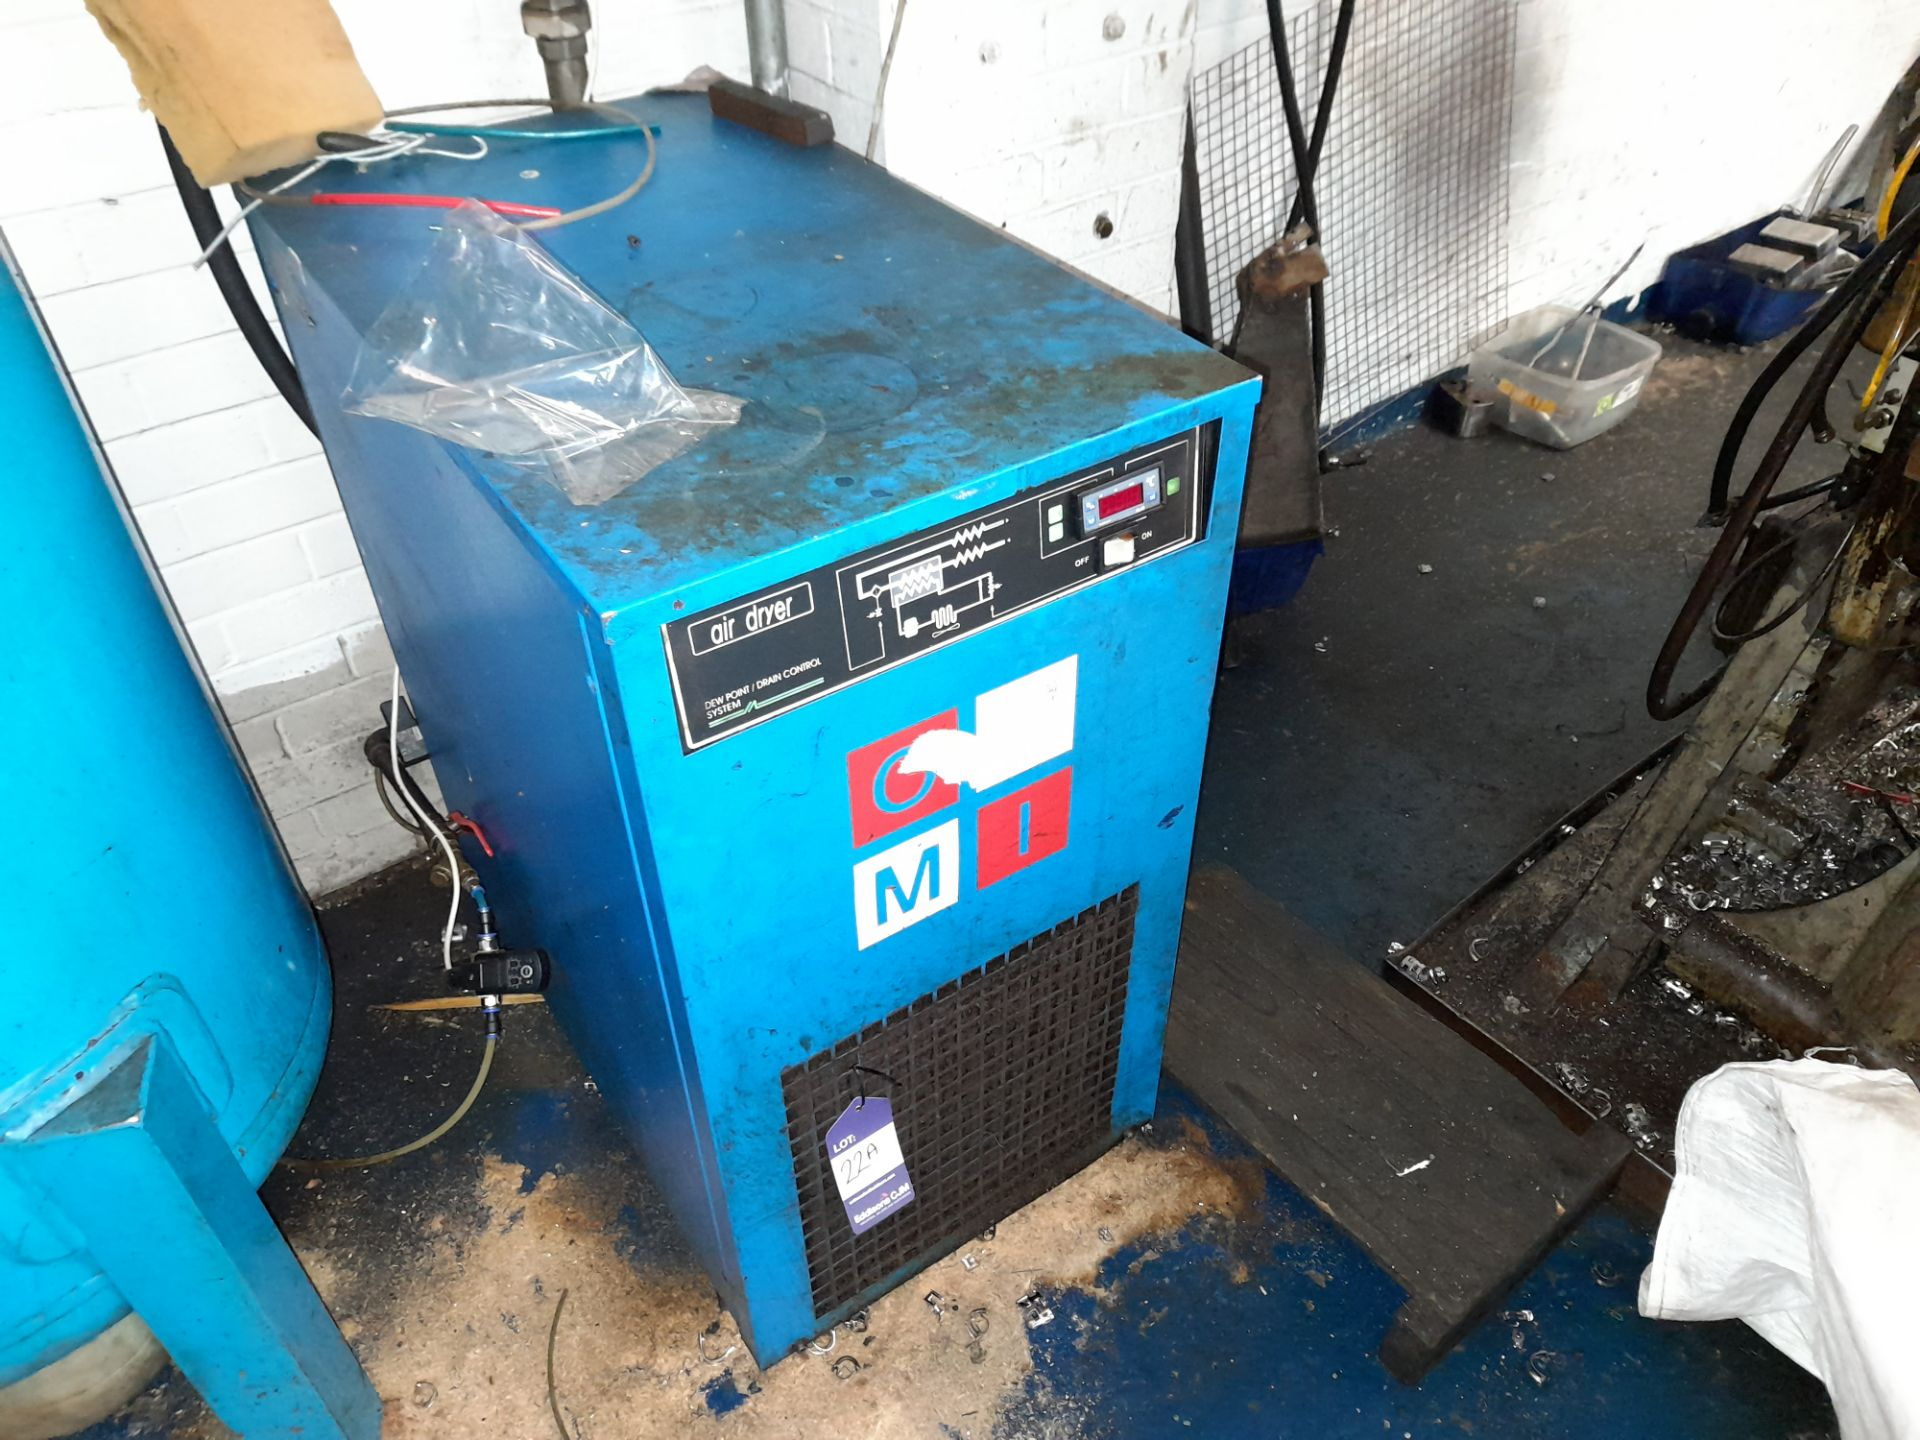 OMI Compressed Air Dryer - Image 2 of 2